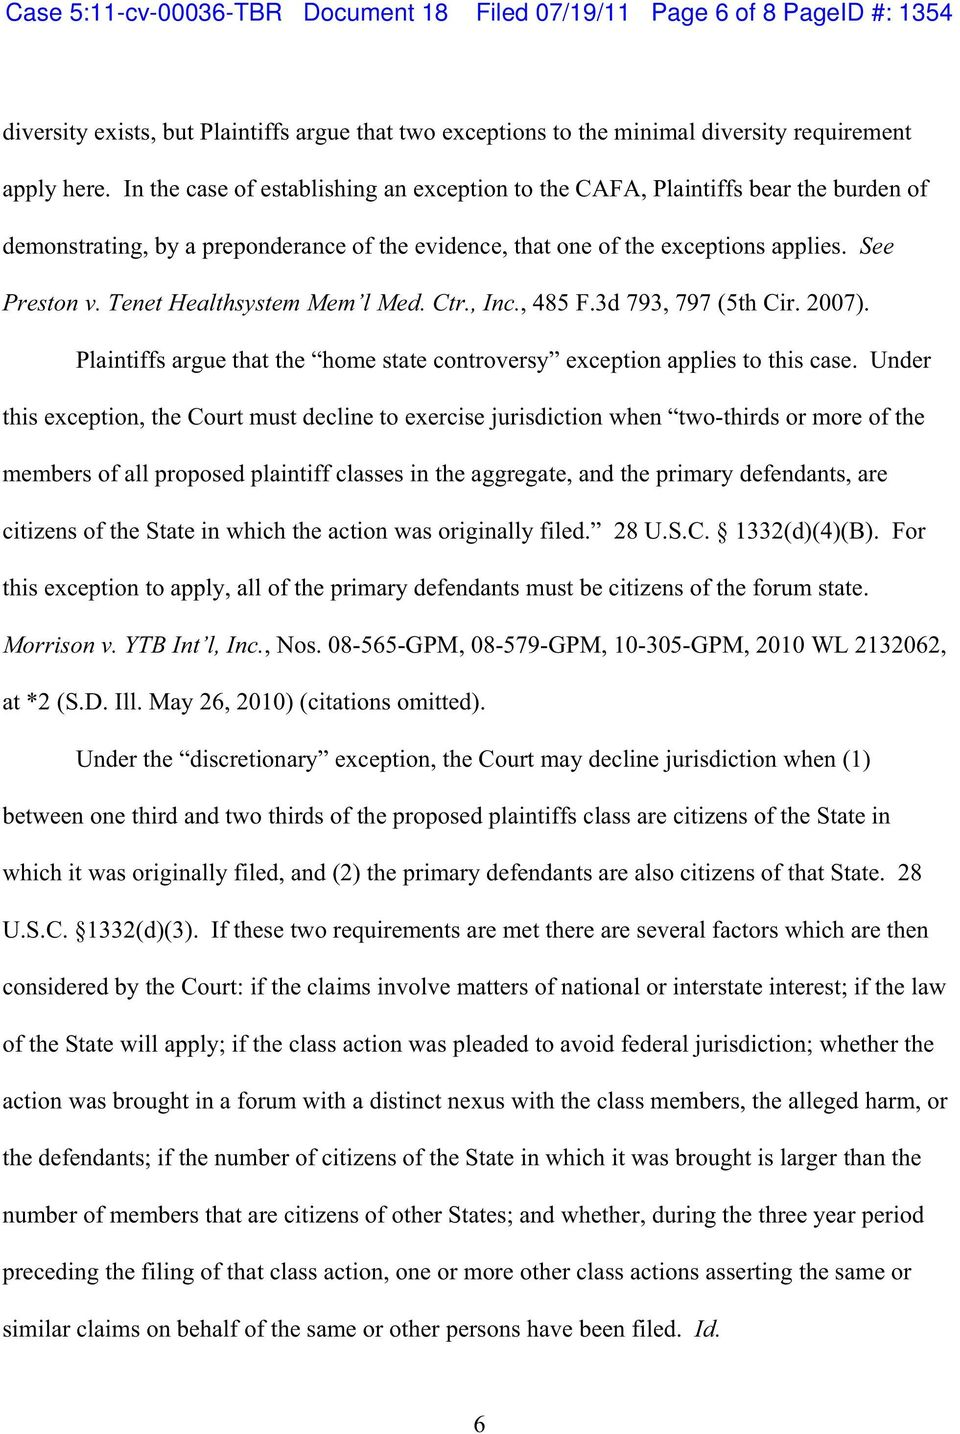 Tenet Healthsystem Mem l Med. Ctr., Inc., 485 F.3d 793, 797 (5th Cir. 2007). Plaintiffs argue that the home state controversy exception applies to this case.